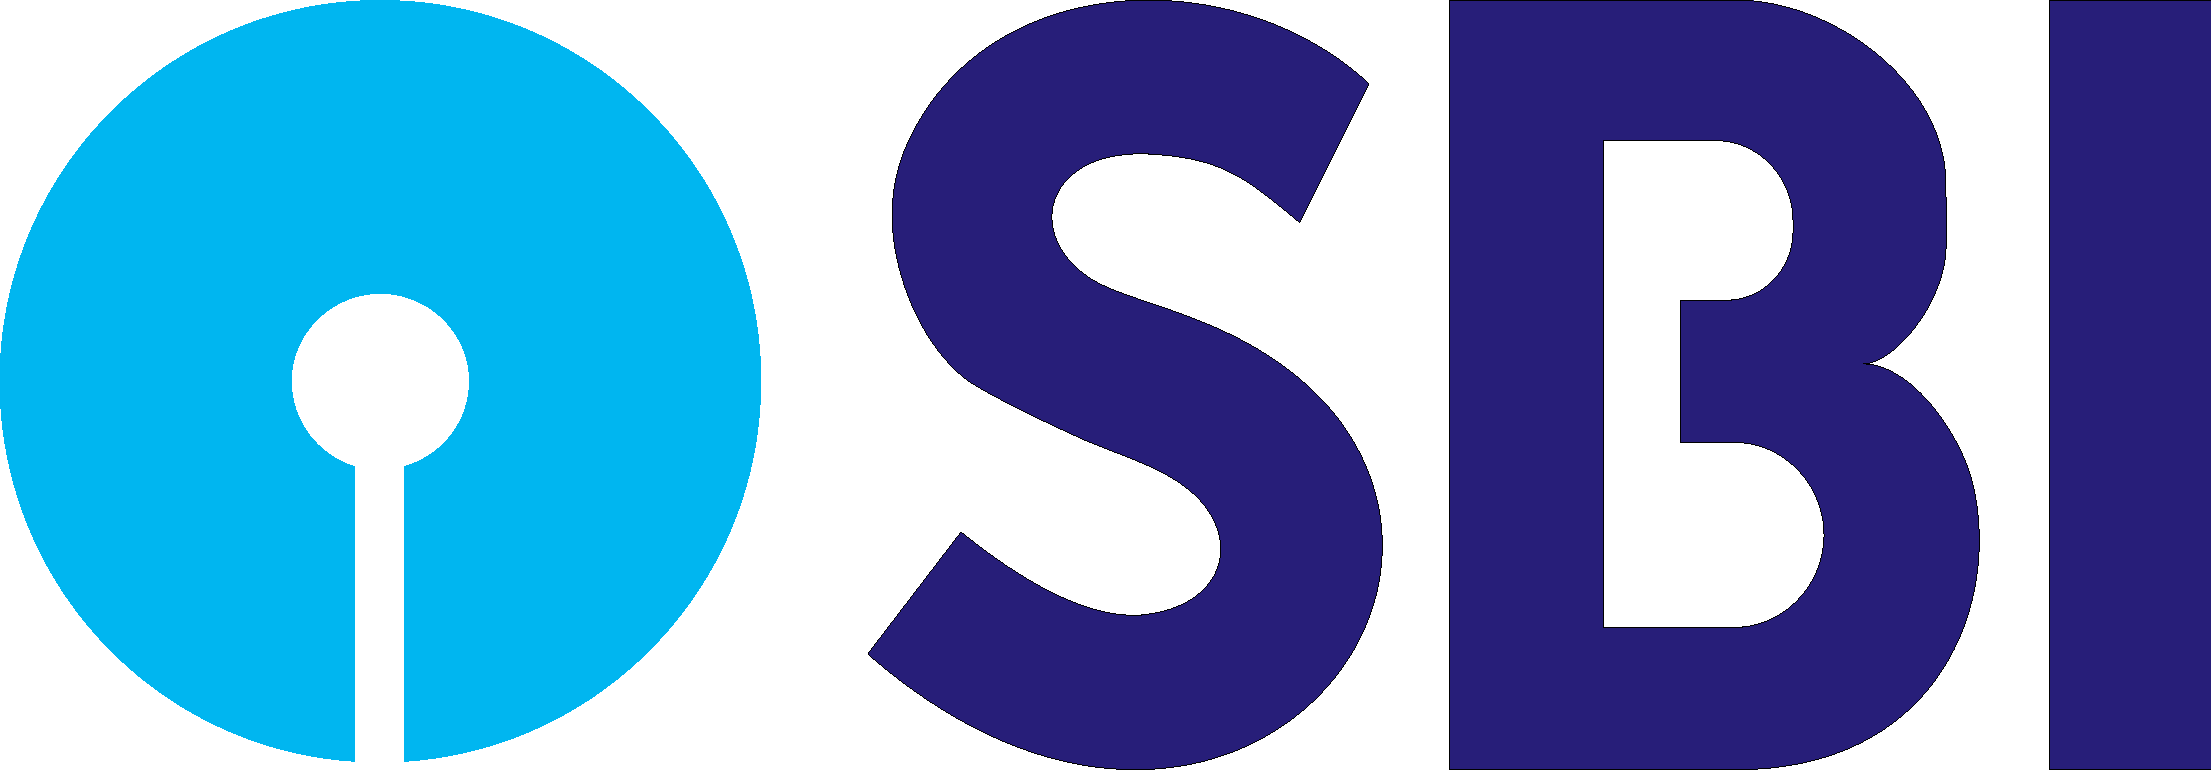 SBI PO Result 2020 declared at sbi.co.in, Here is how to check